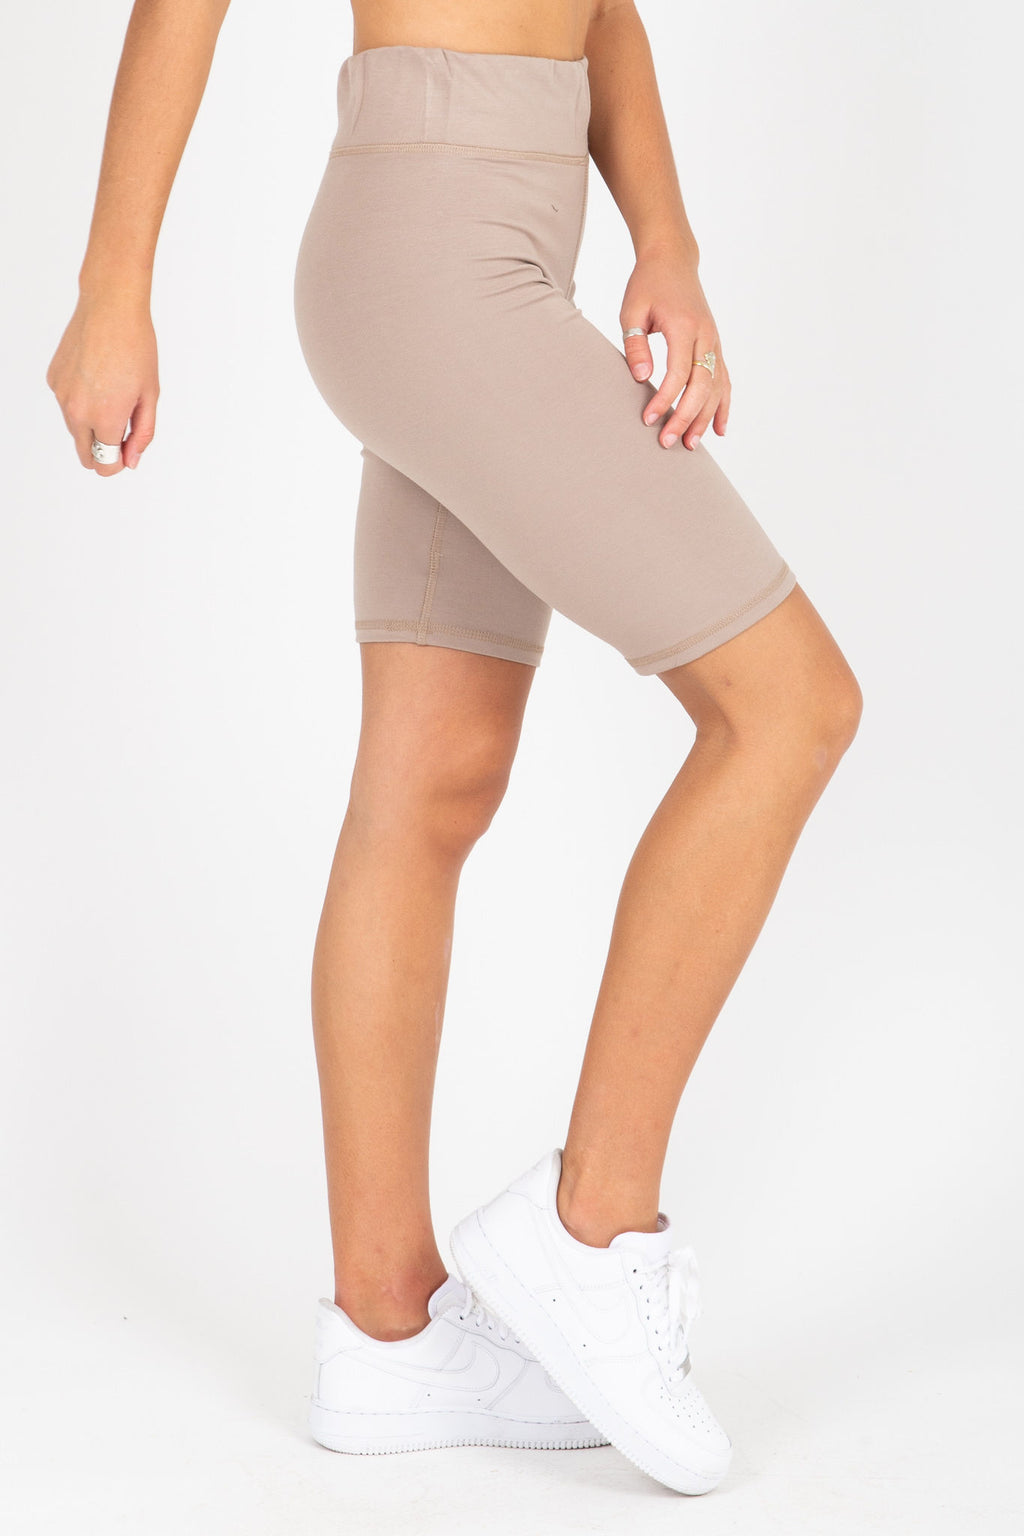 The Thick Knit Biker Short in Tan, studio shoot; side view